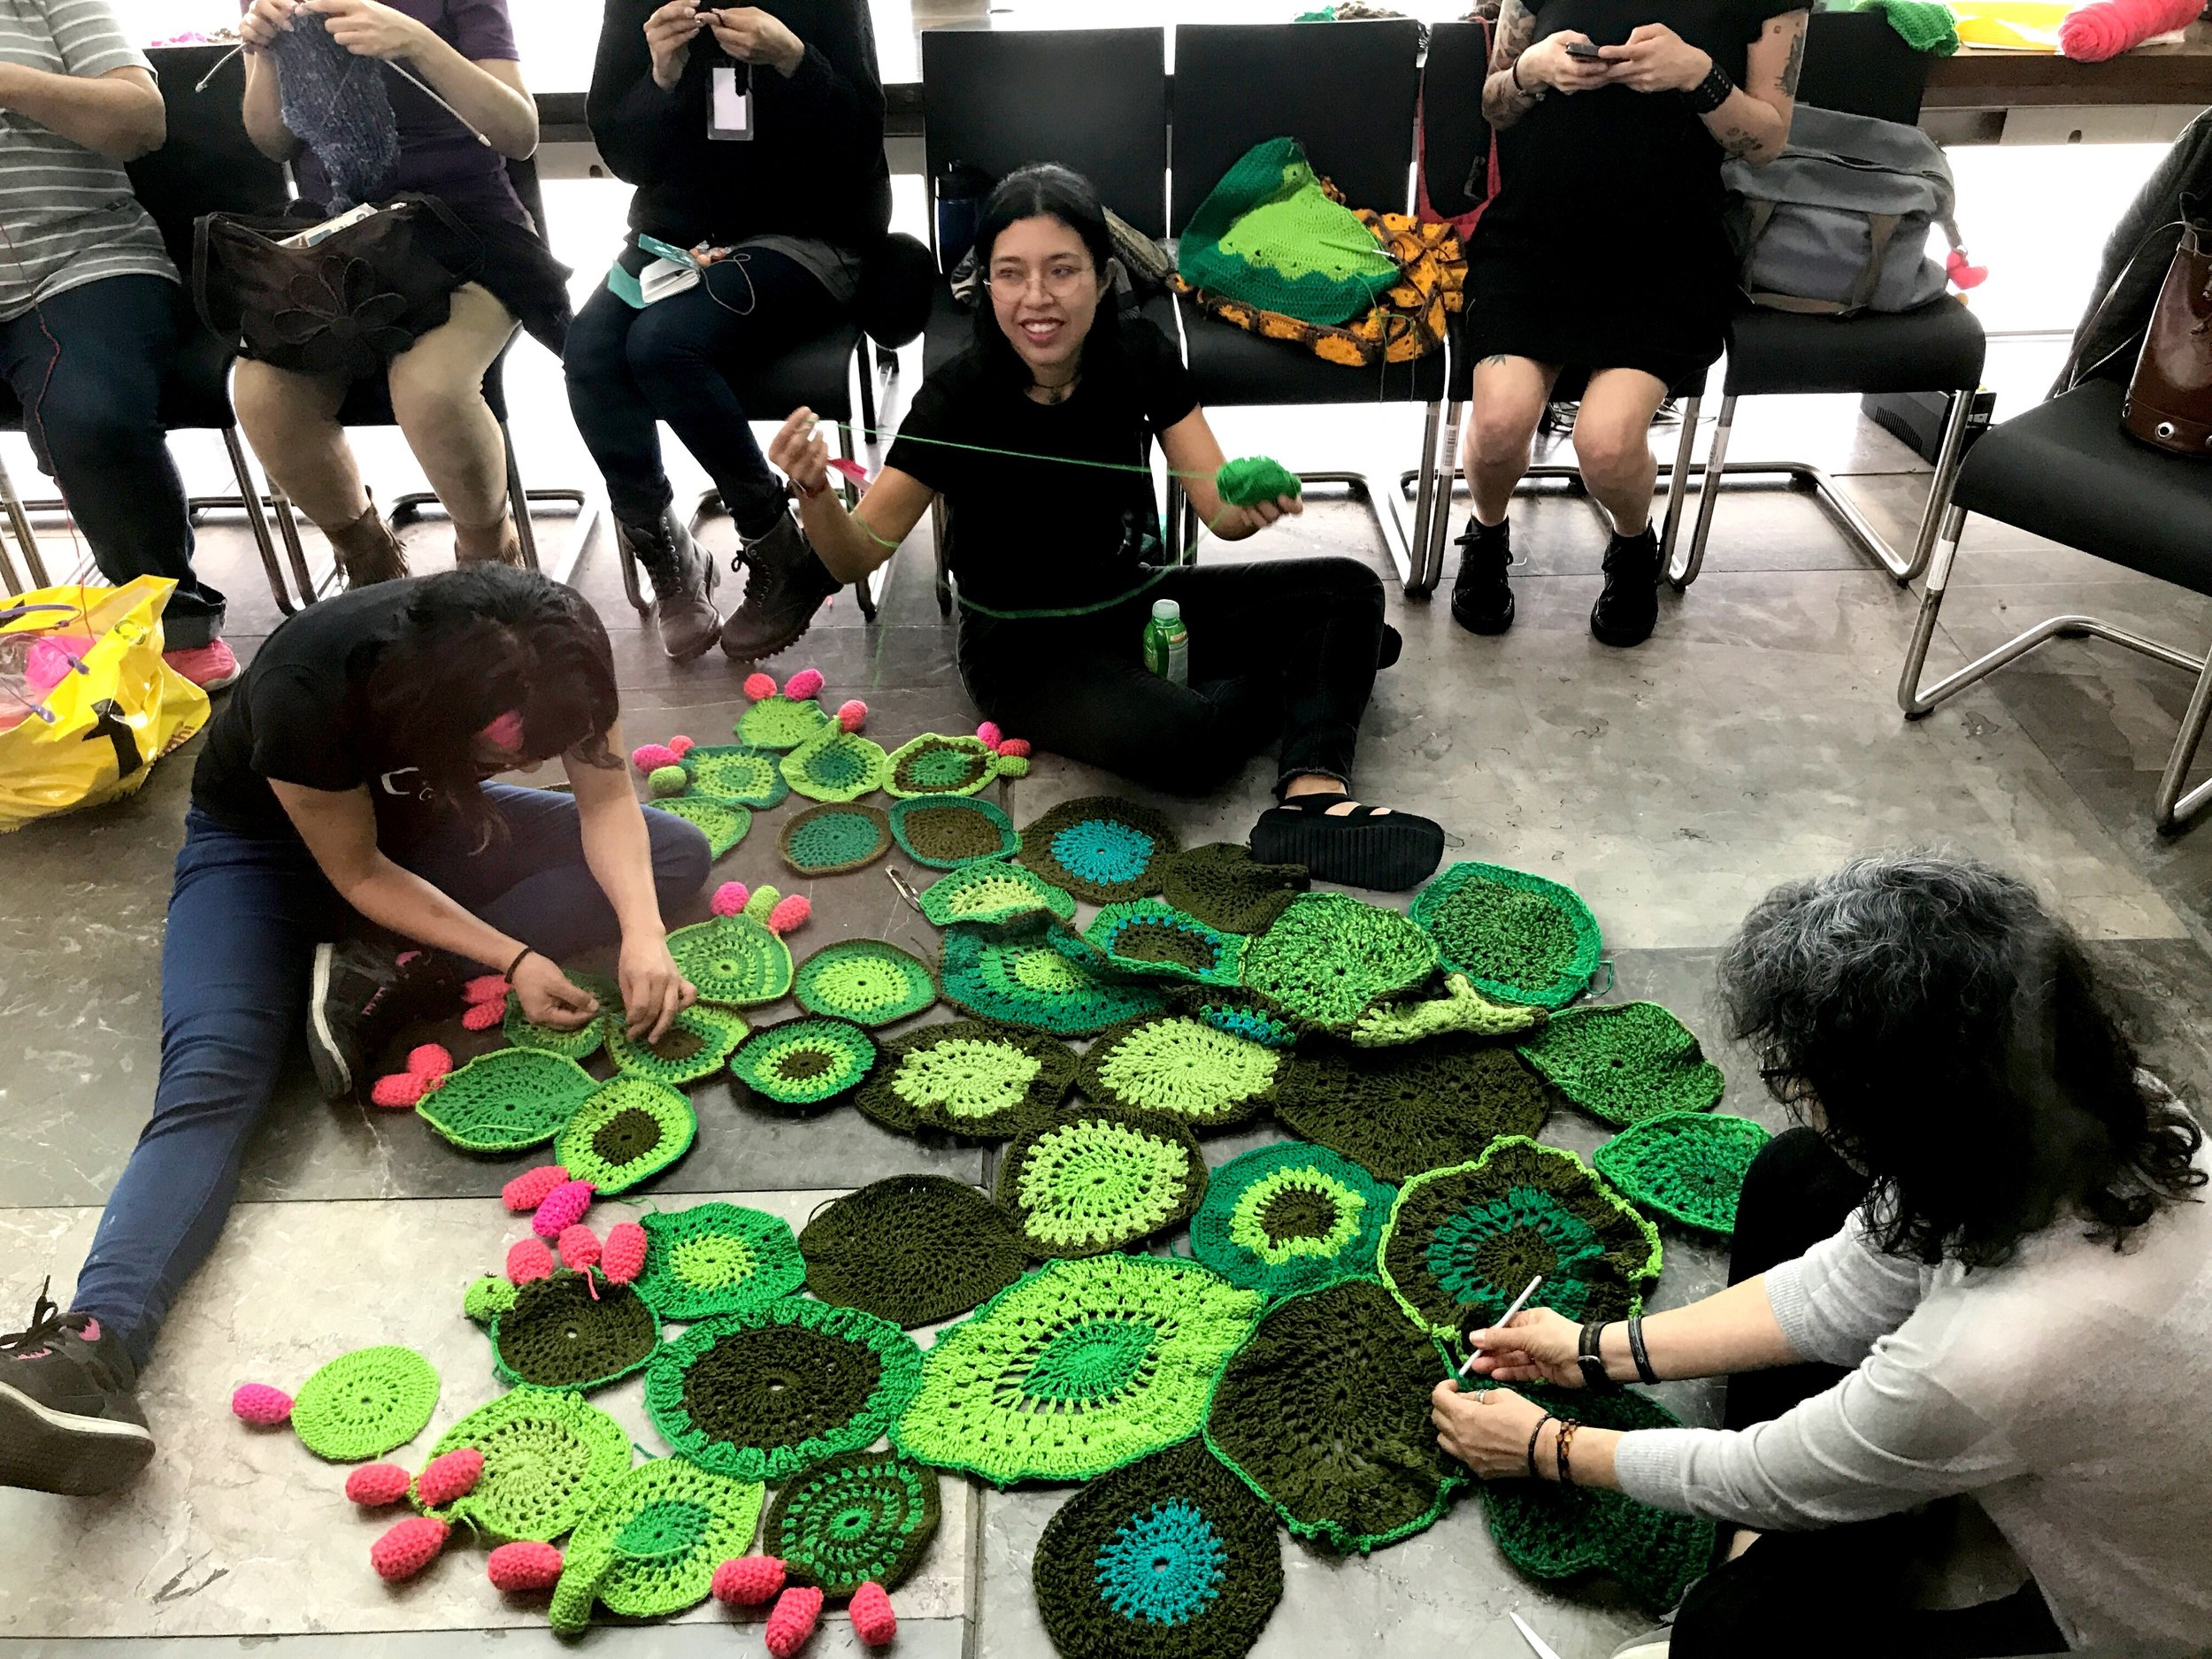 One of the rooms along the sides of the library was filled with women knitting a cool cactus